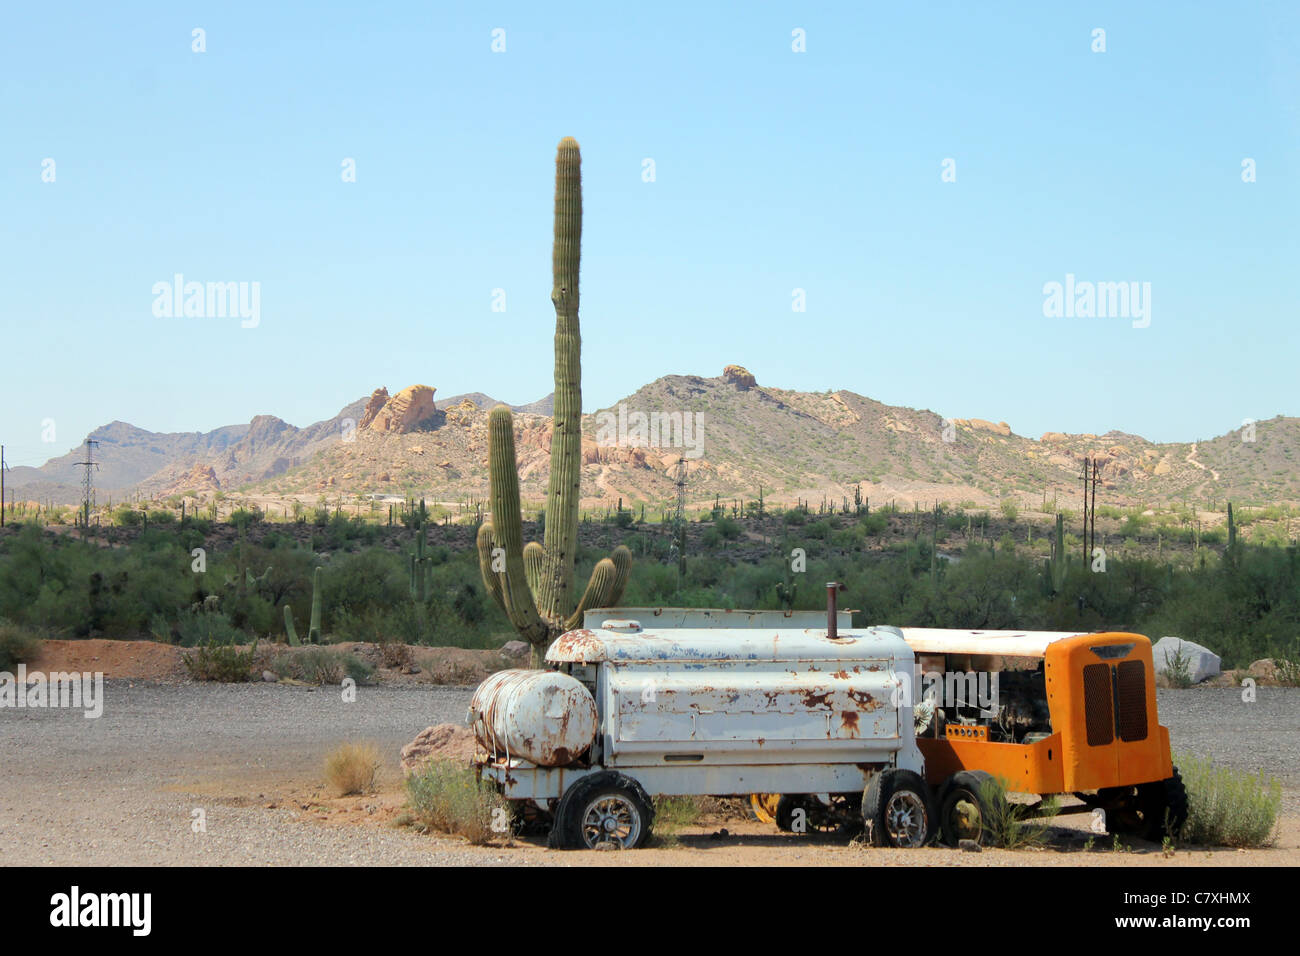 Old times in the desert - Stock Image